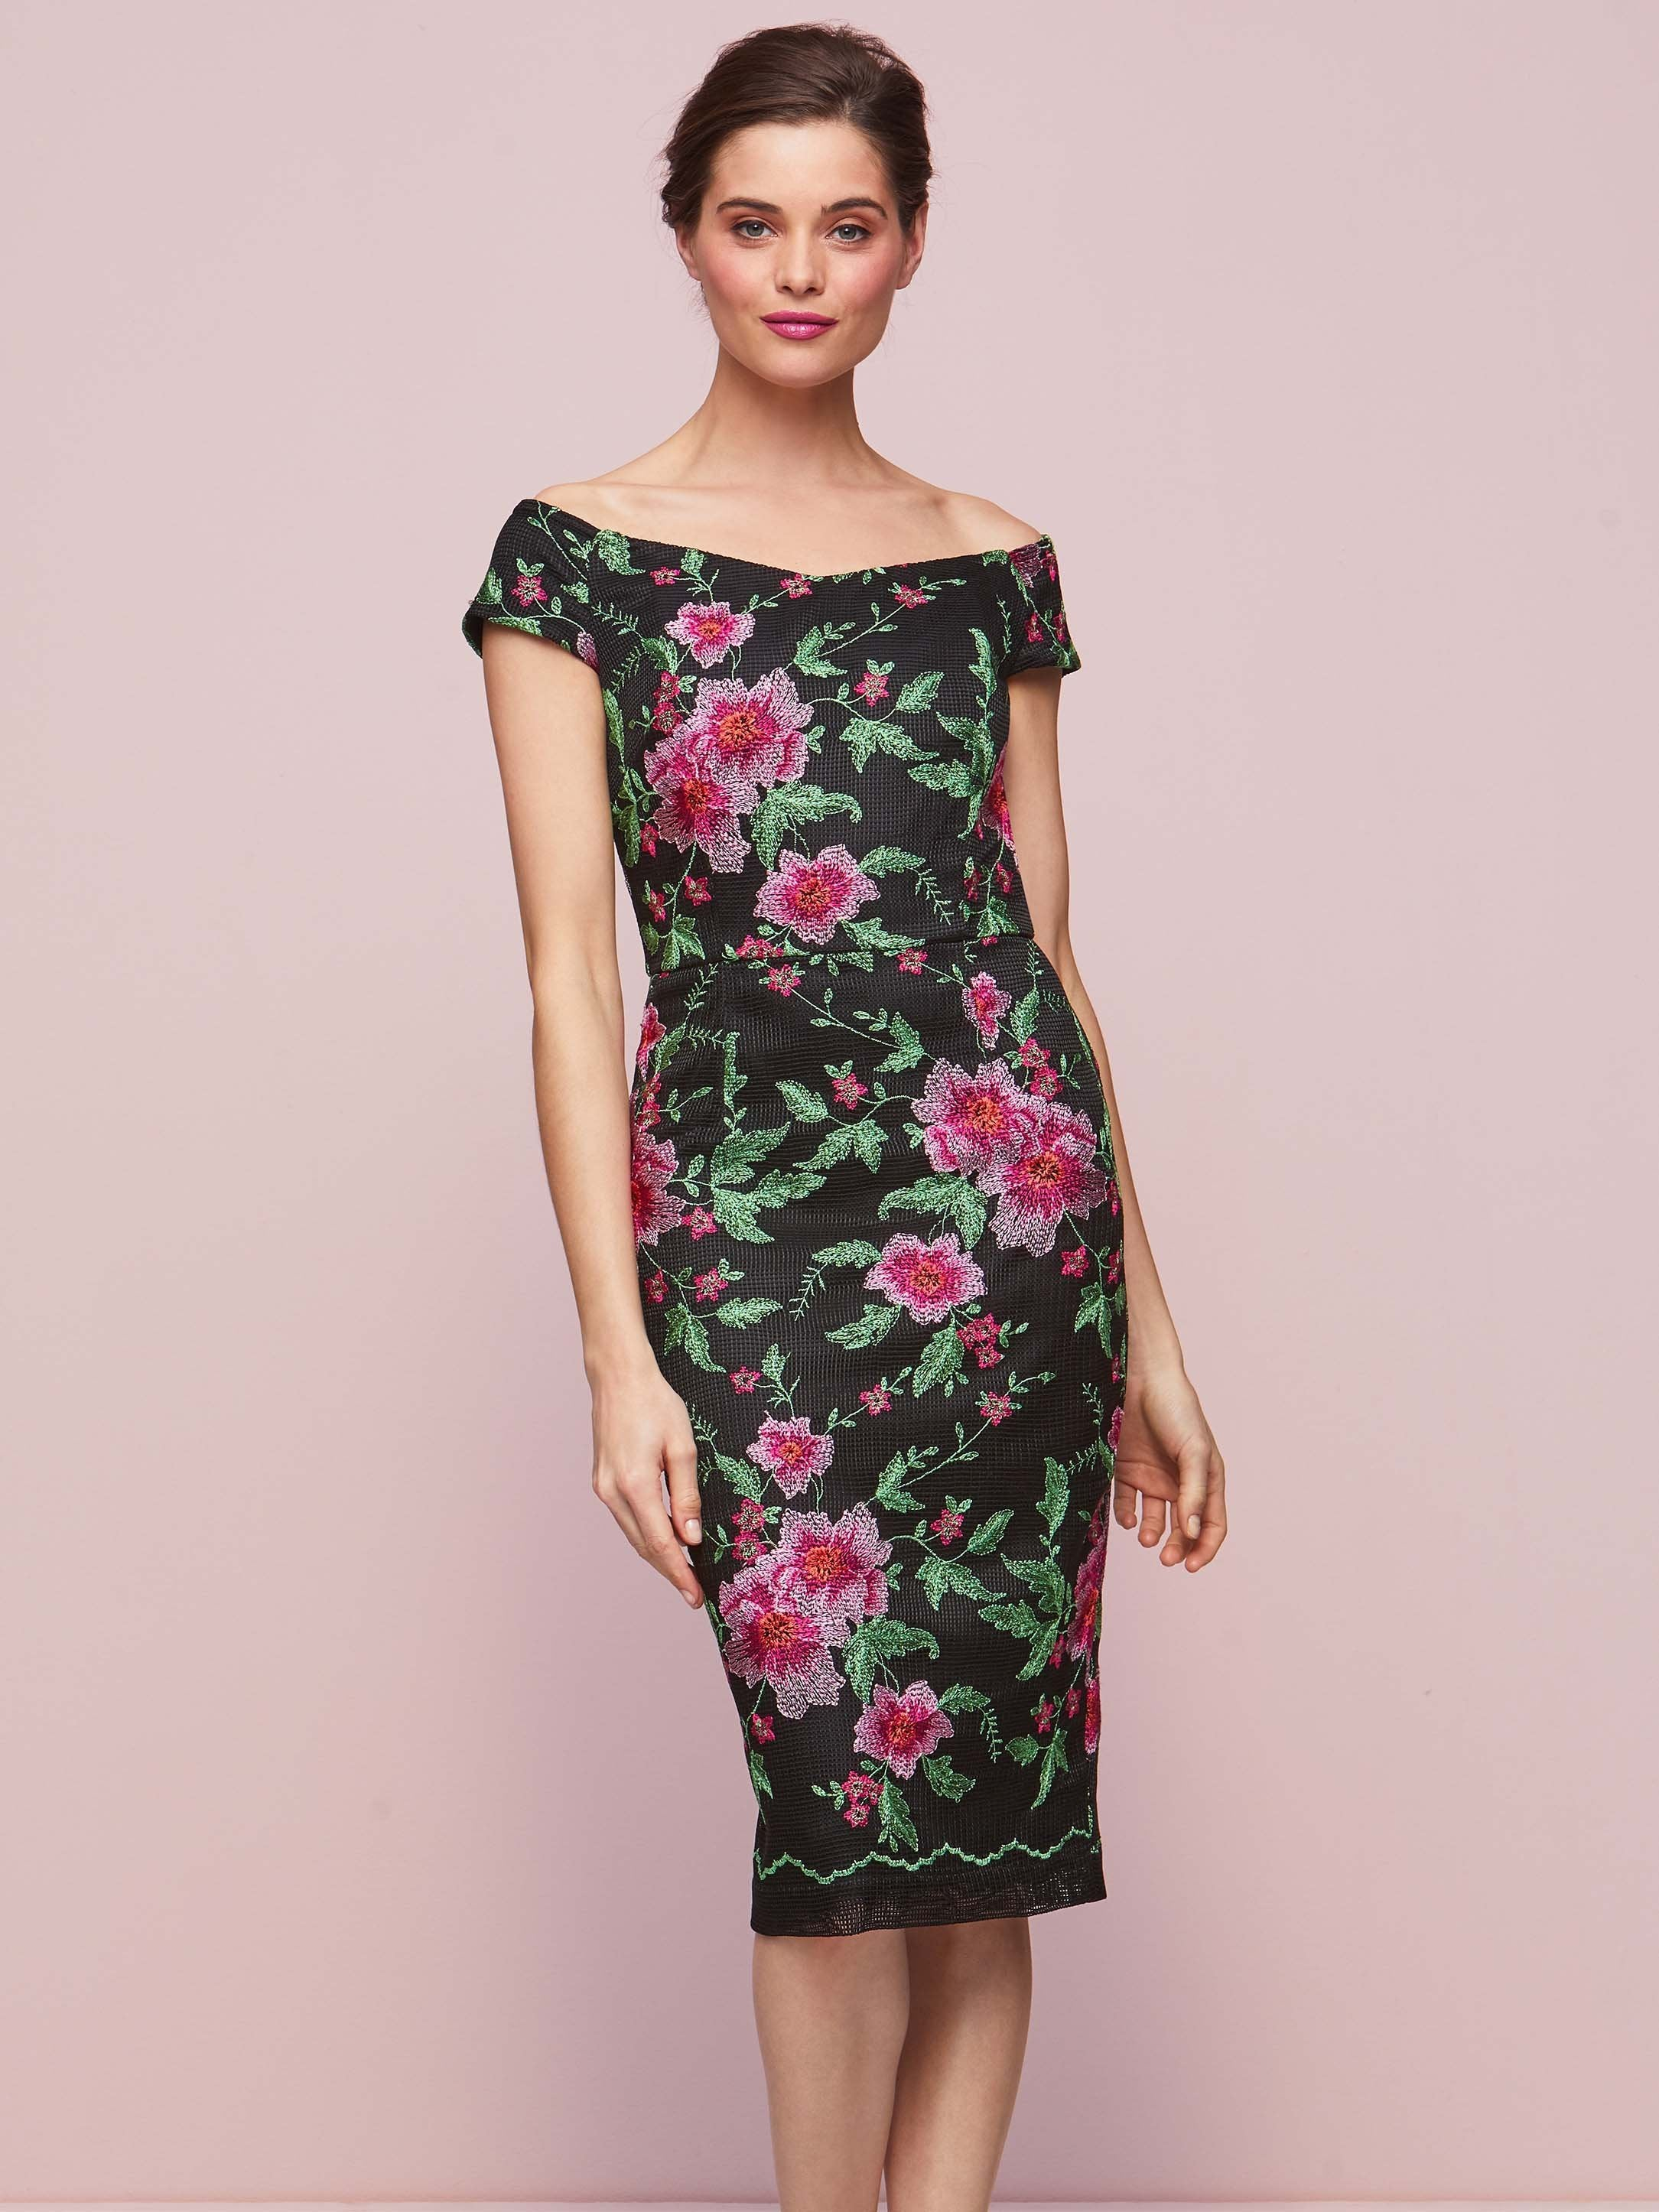 Gina Bacconi Blck/Pink Floral Embroidery Dress